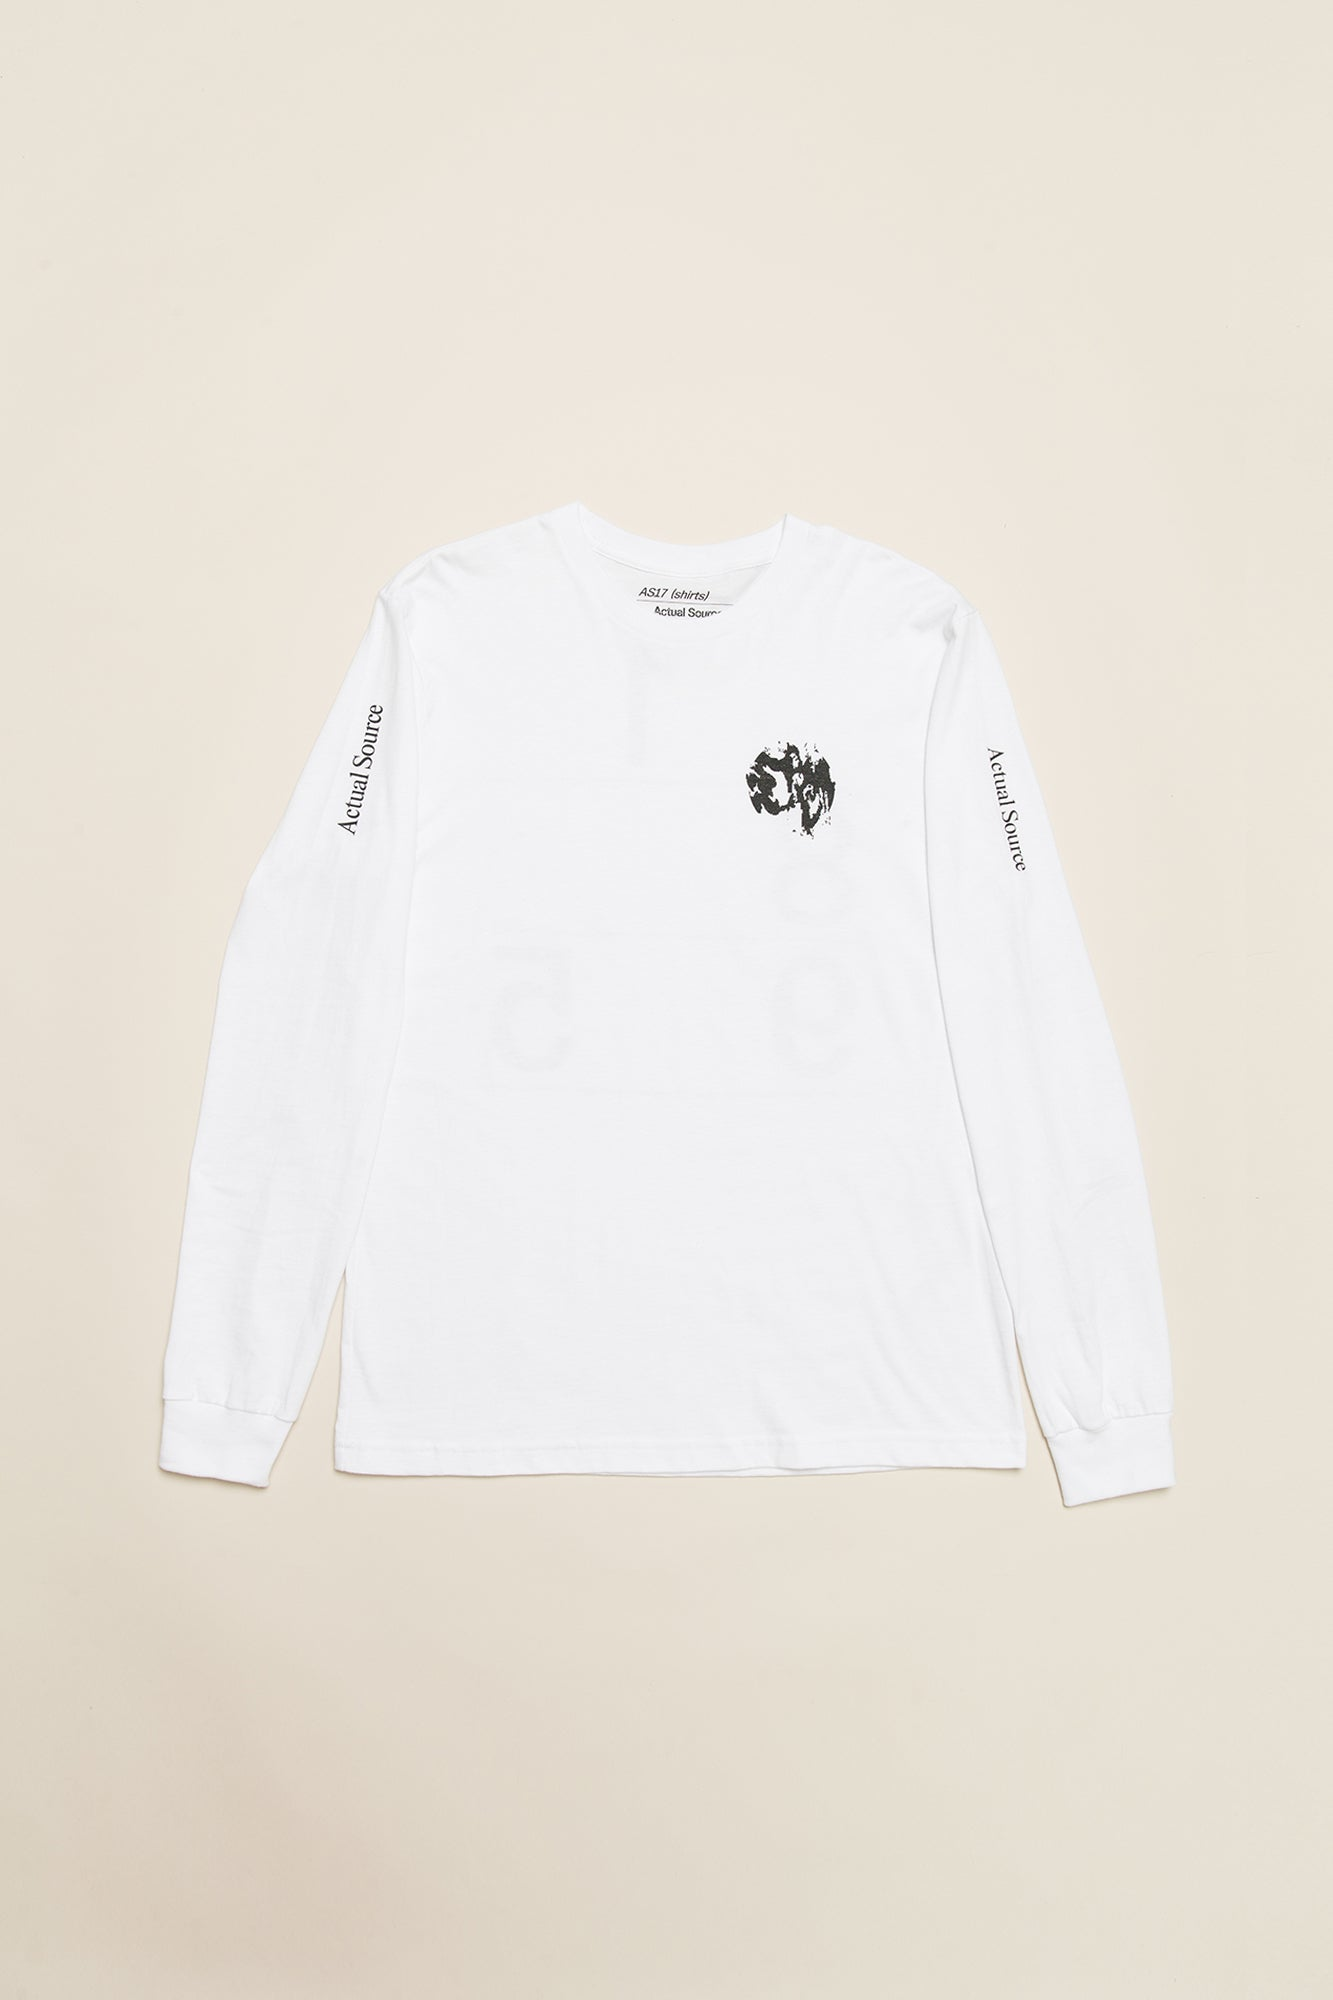 Call Now Long Sleeve - Black-Actual Source-Small-Average